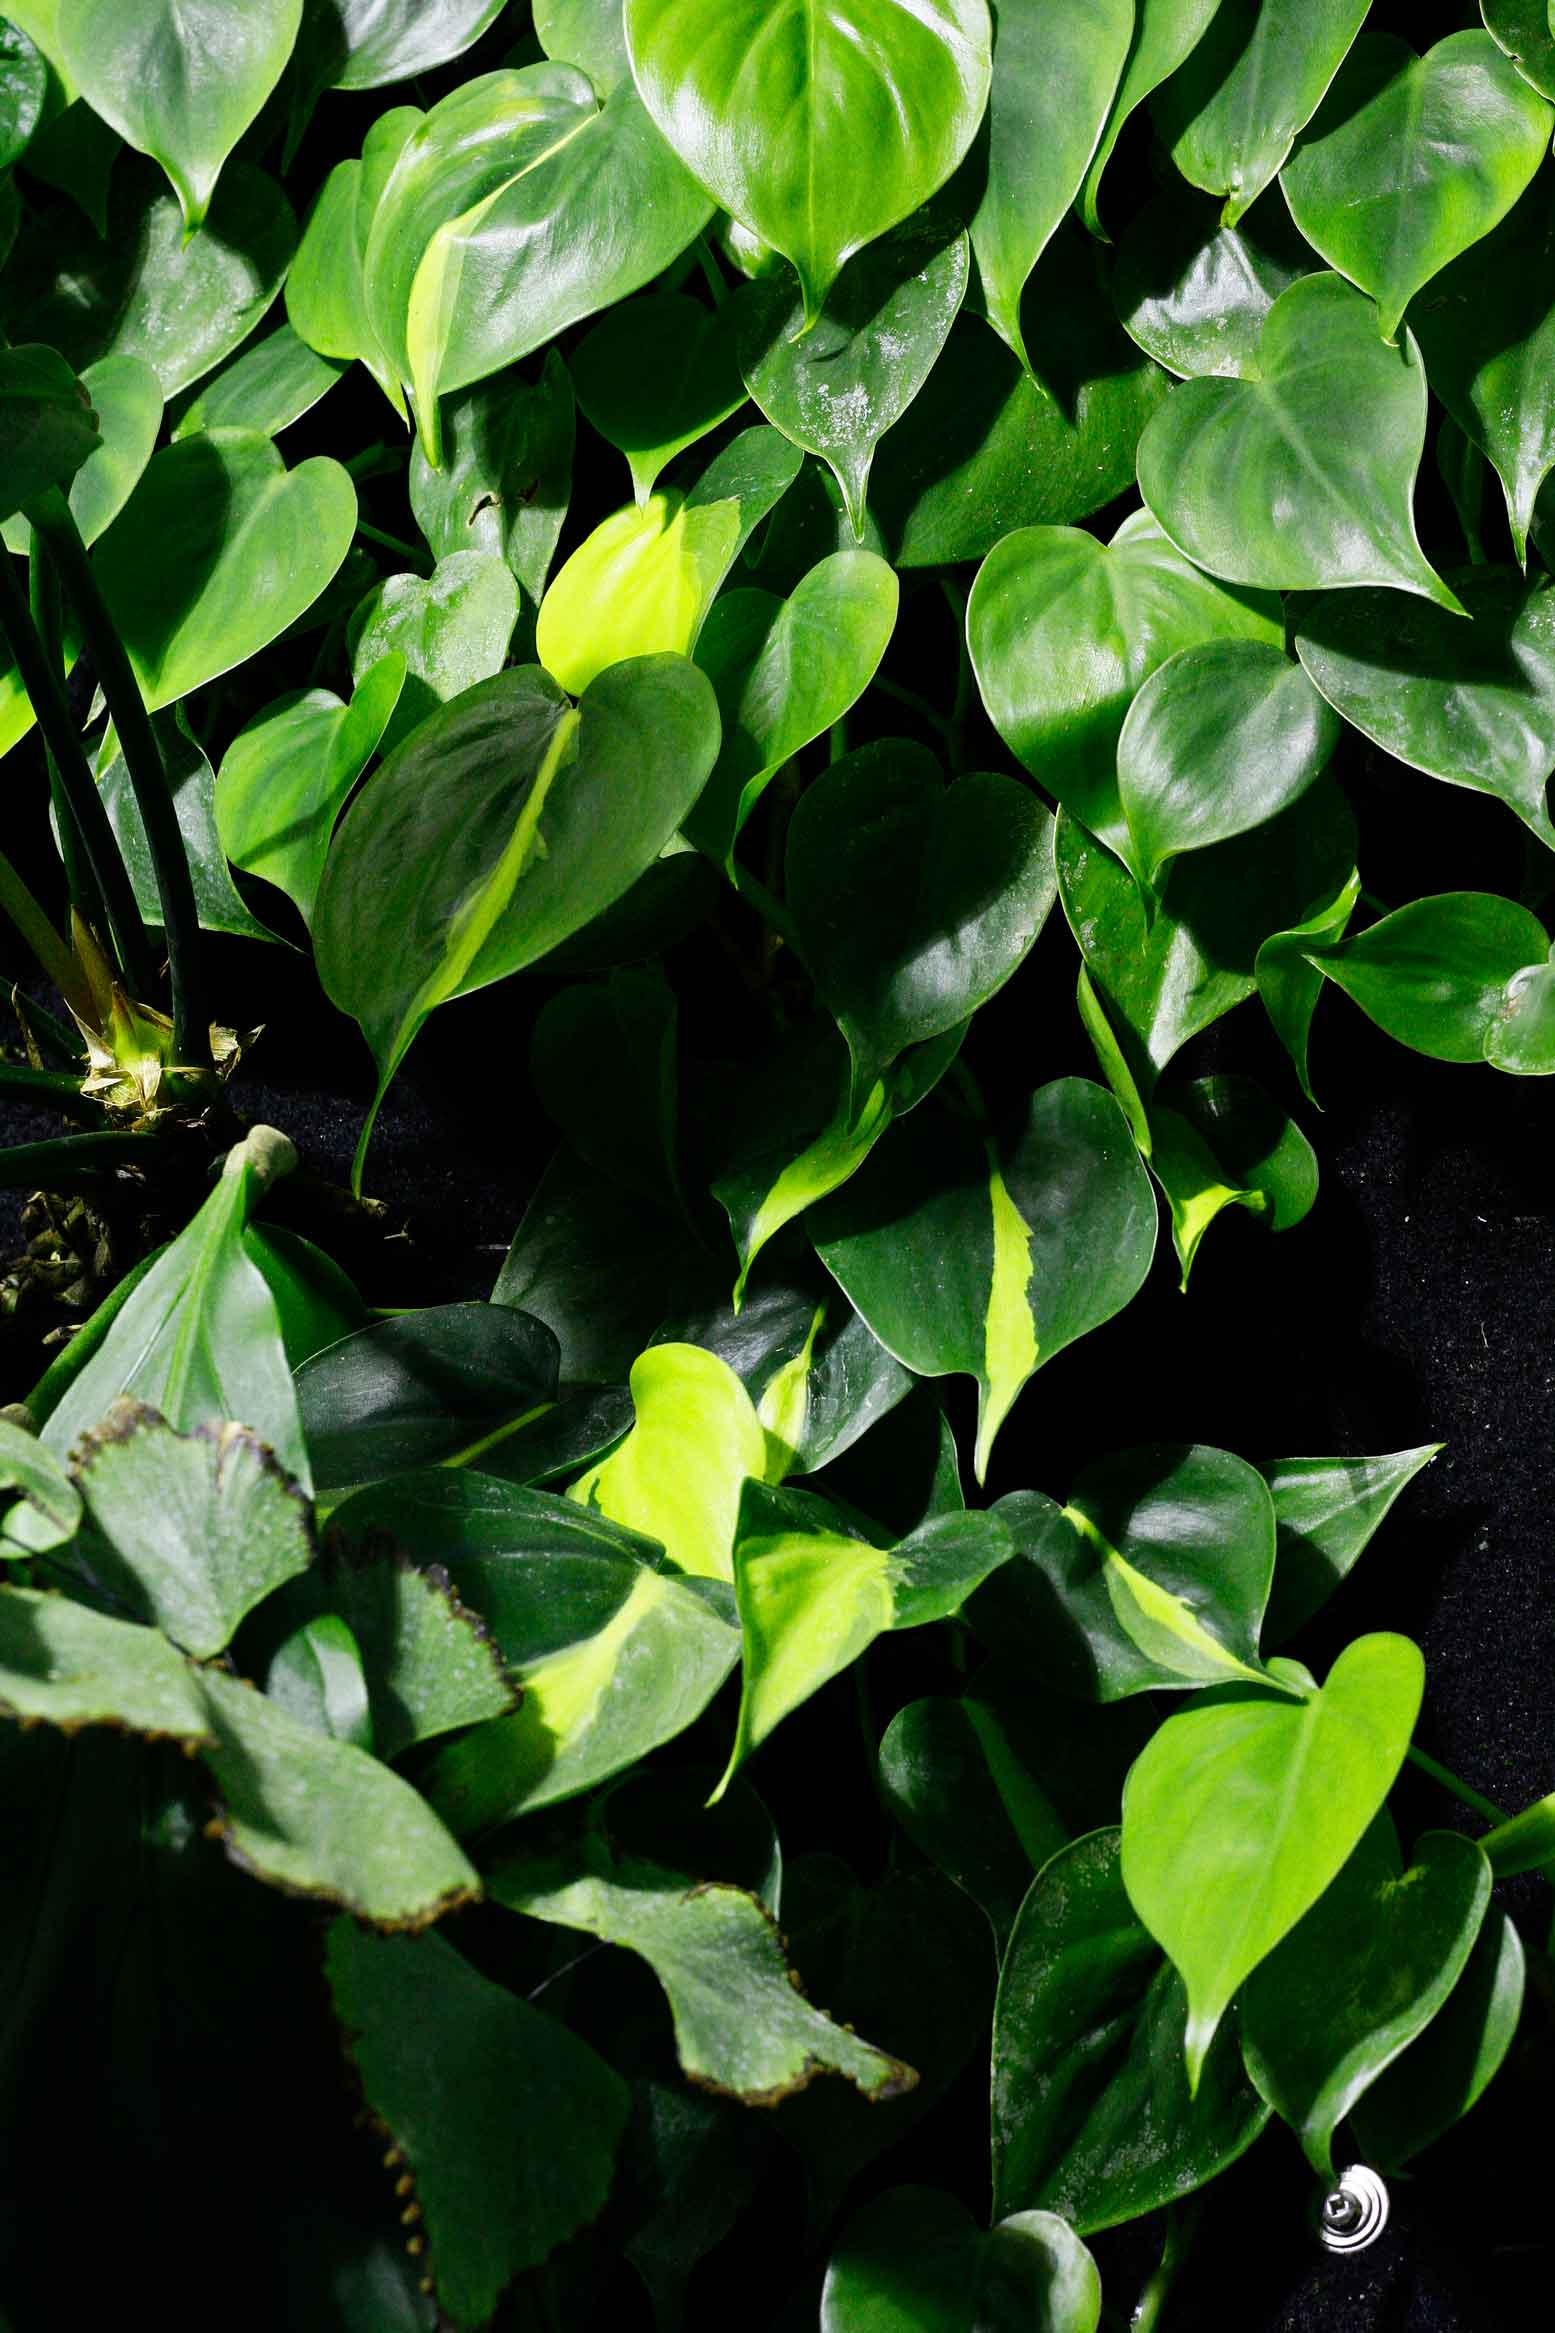 Philodendron hederaceum and Philodendron 'Brazil',a variety of the species, growing together in avertical garden. Image © In Situ Plants .